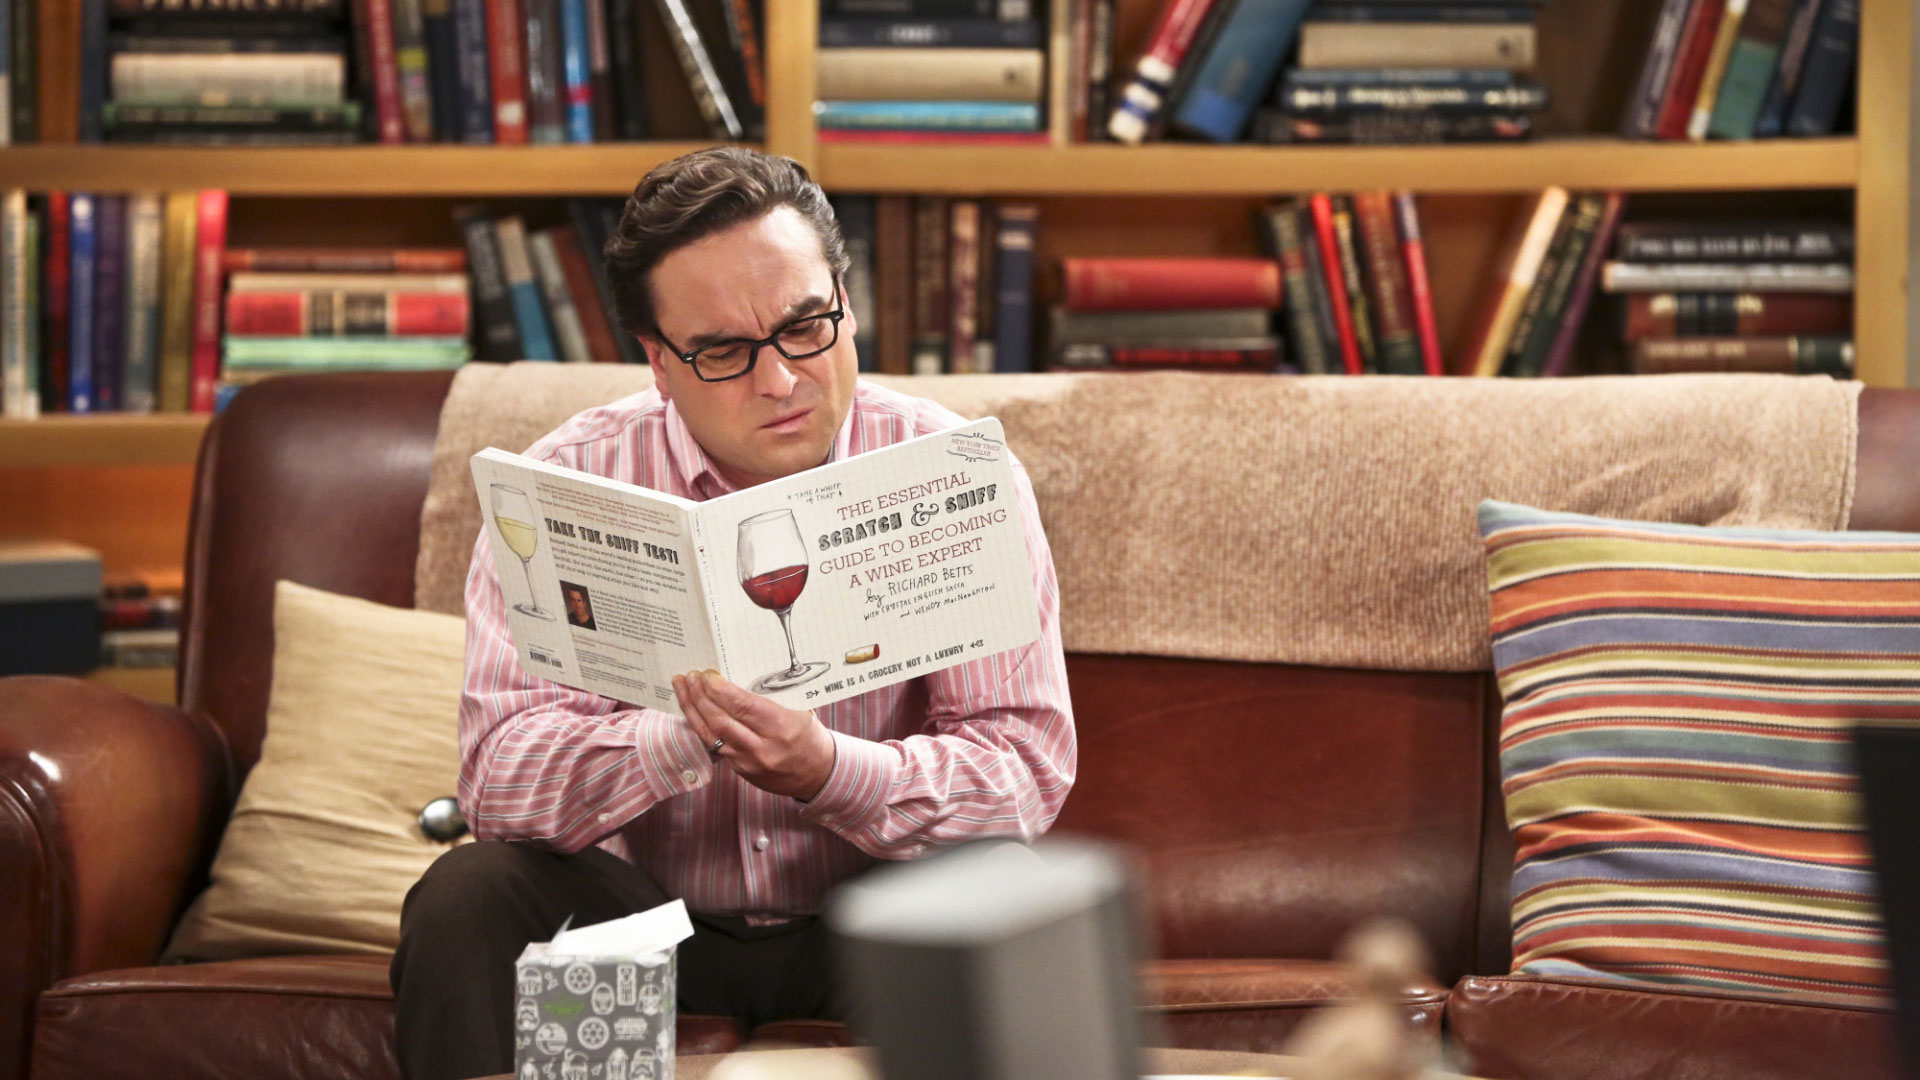 Leonard reads up on wine so he can participate in any potential fermentation conversations.